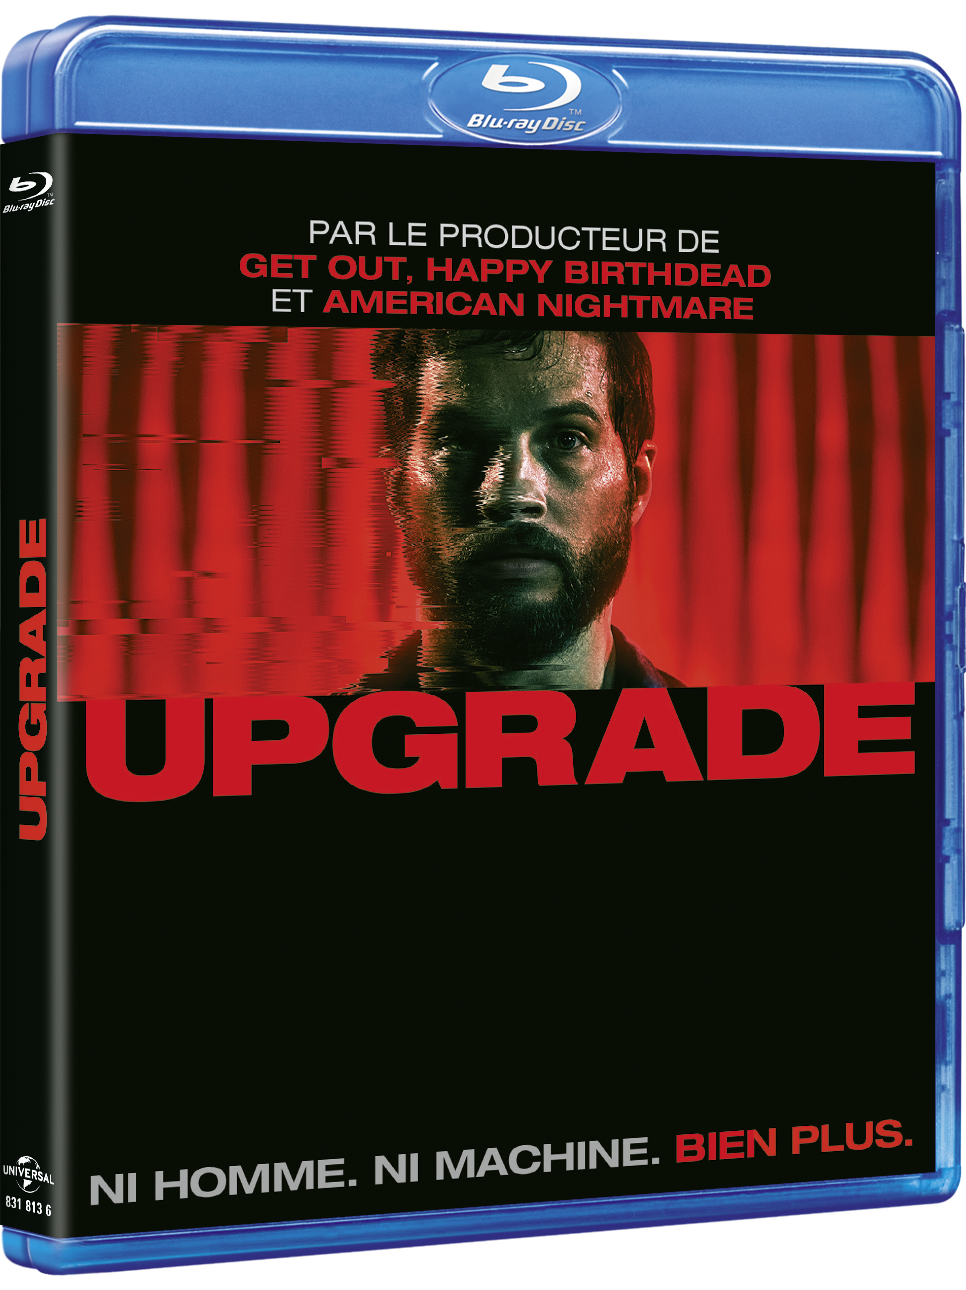 [REVUE CINEMA BLU-RAY] UPGRADE